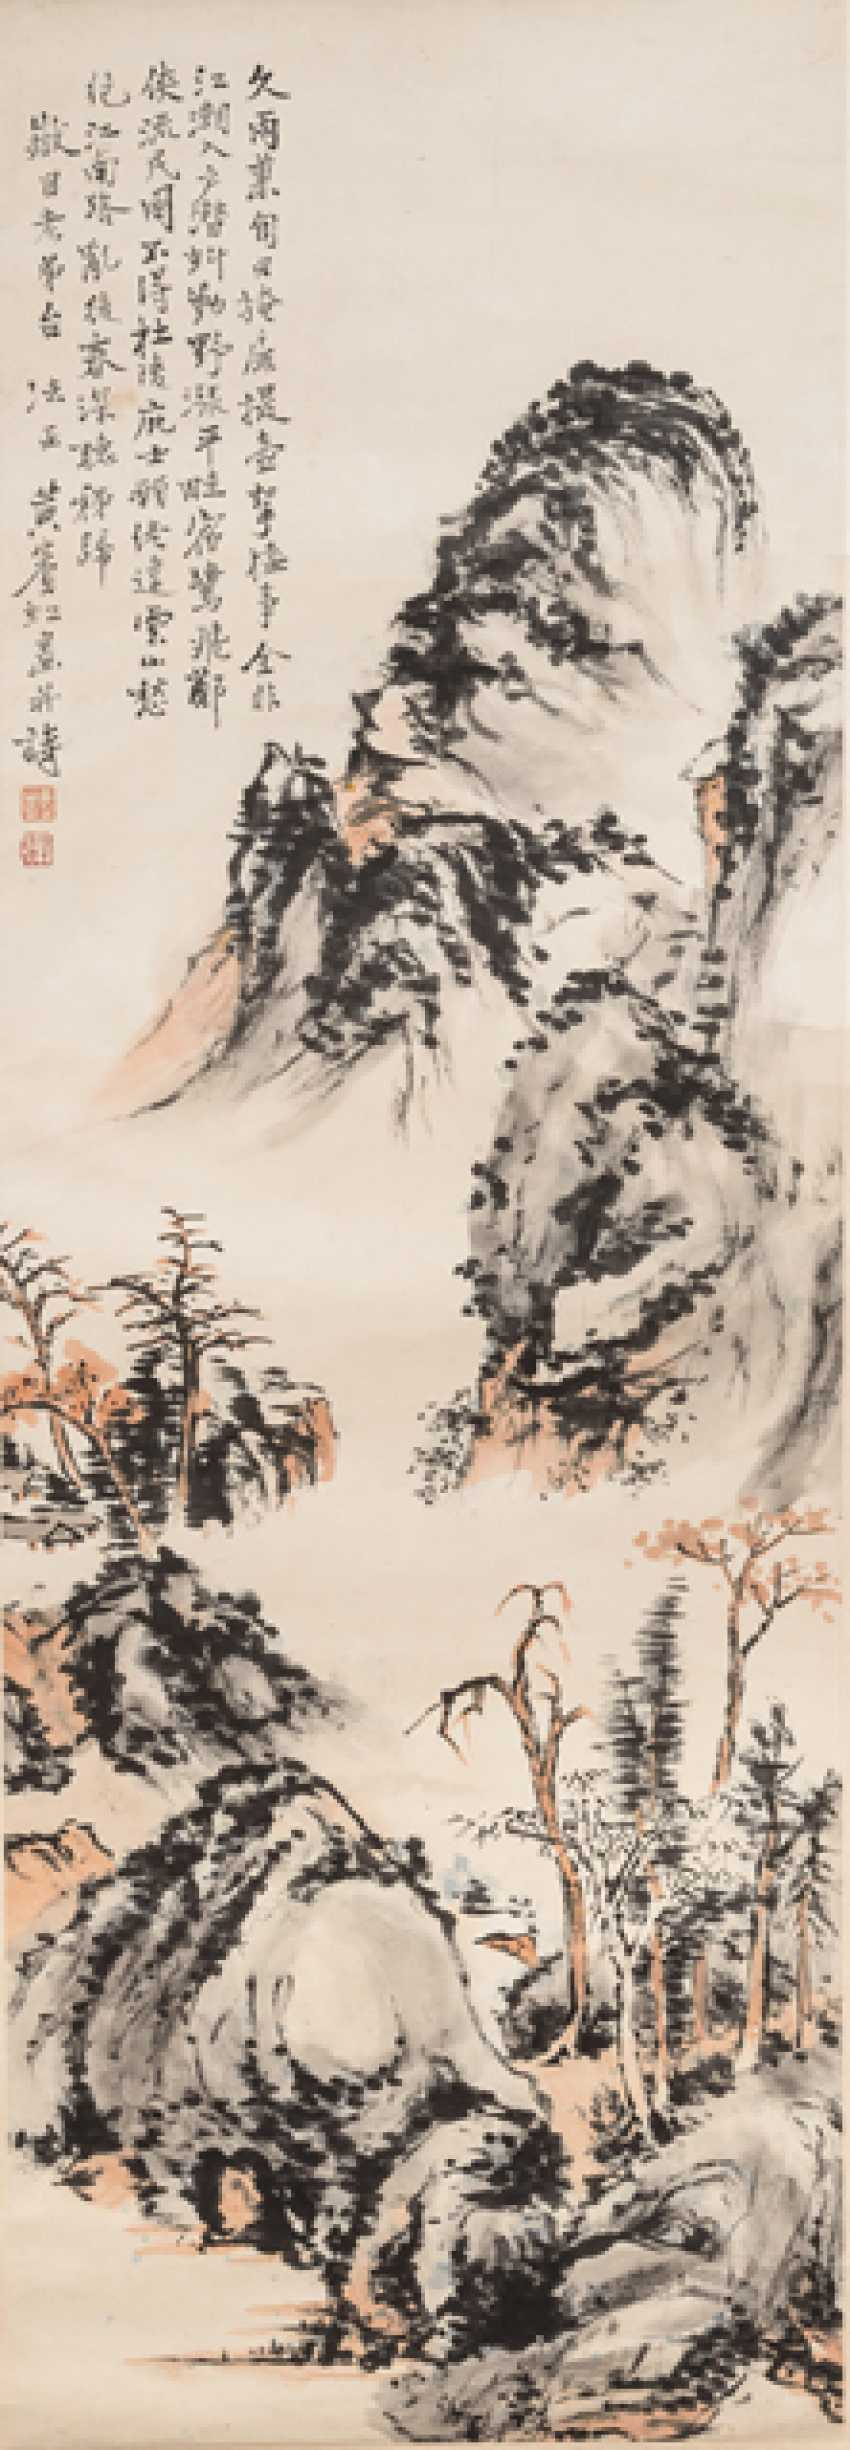 In the style of Huang Binhong (1865-1955) - photo 1